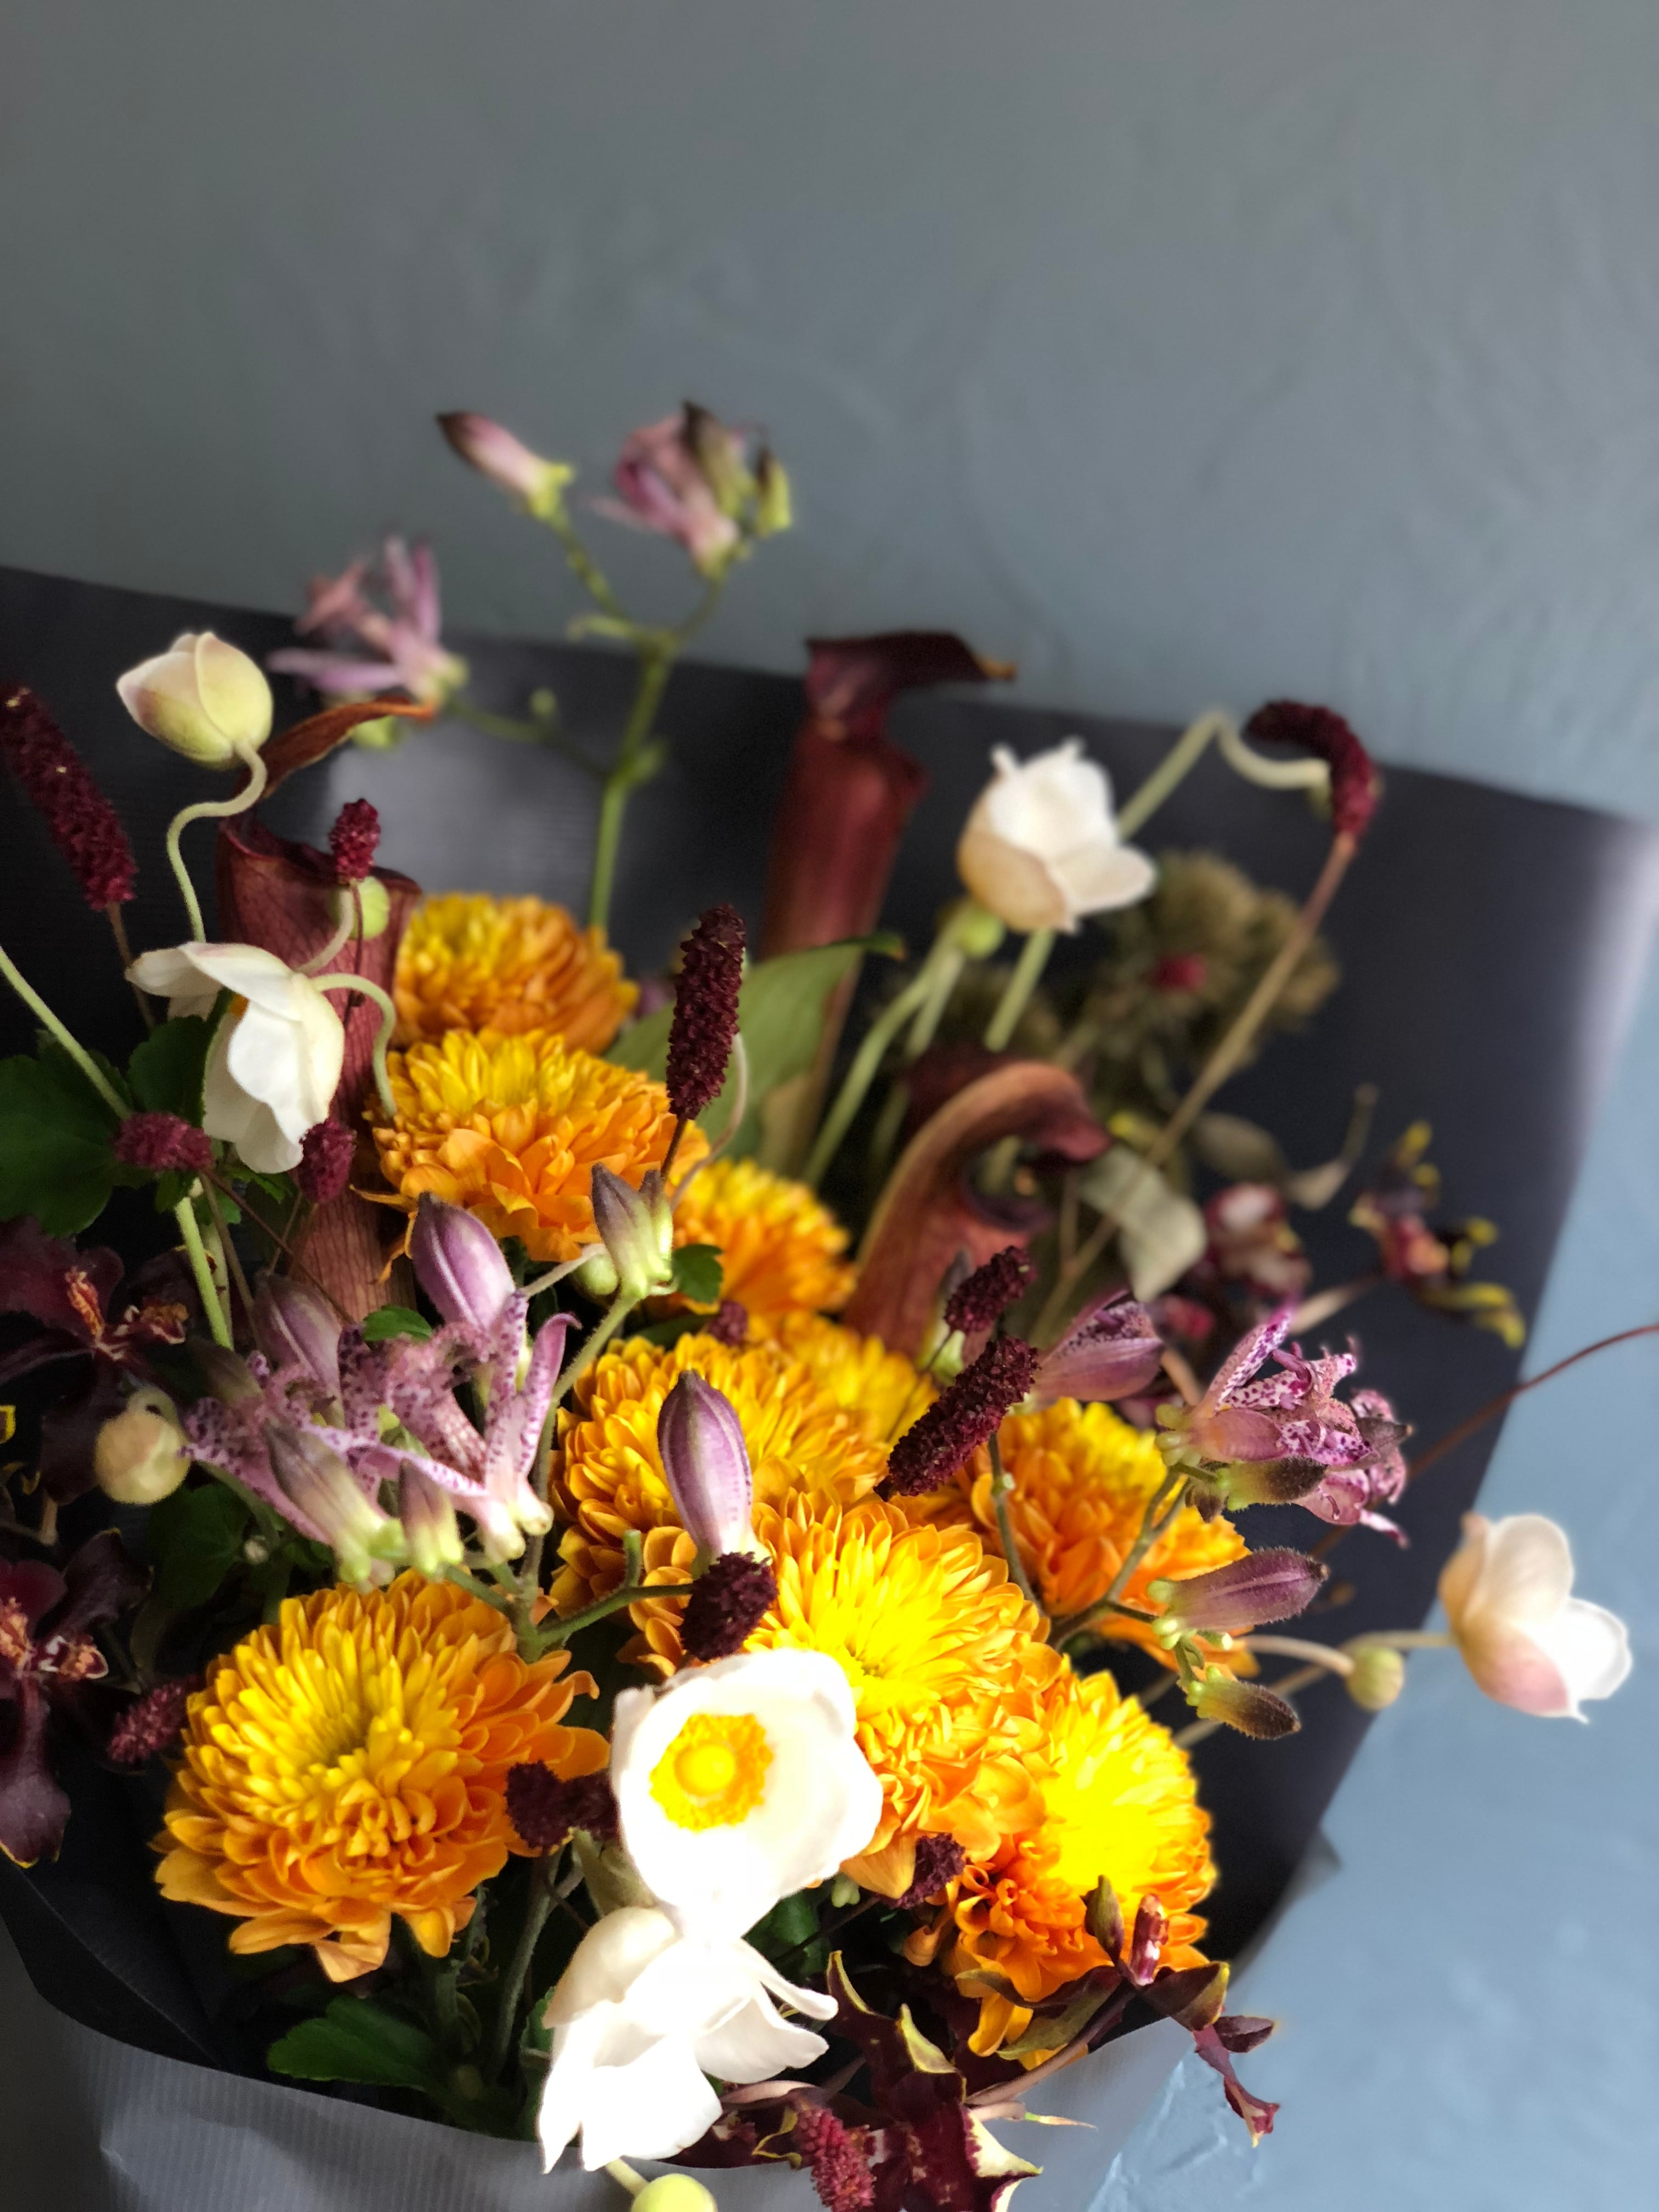 Bouquet-good size for a gift